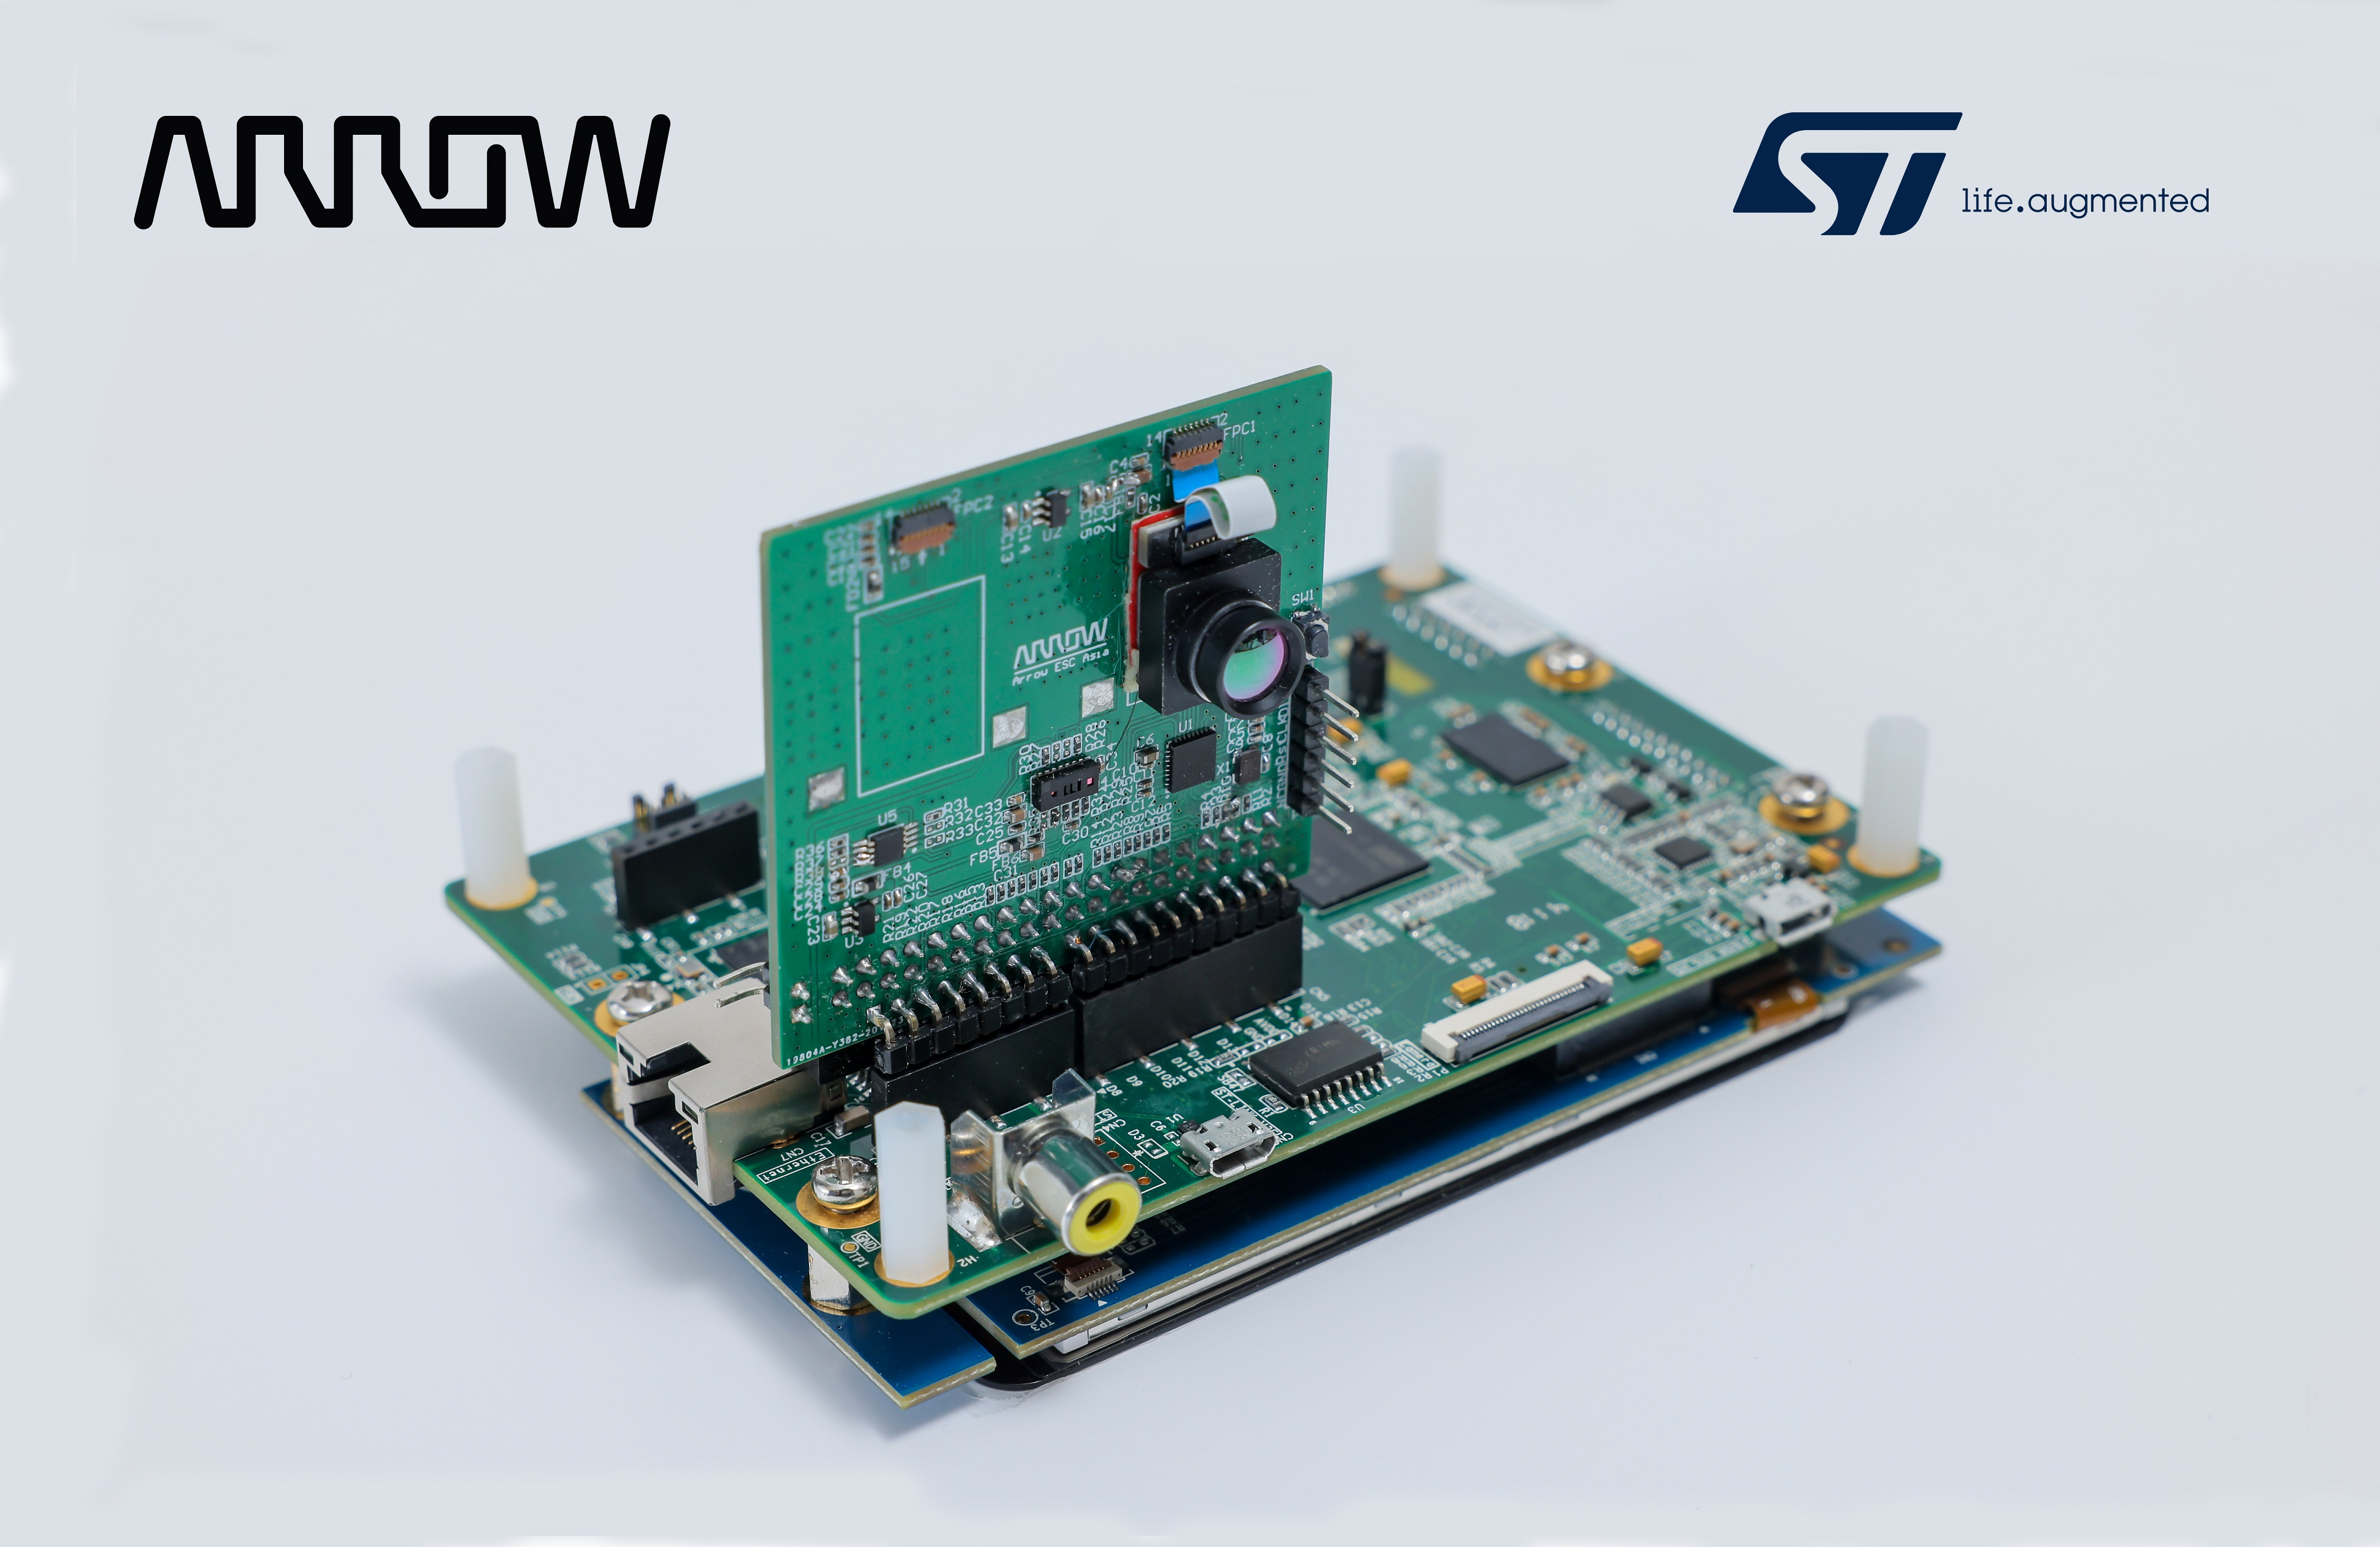 Arrow Electronics Launches AI Thermal Sensing Solution Powered by STMicroelectronics X-CUBE AI